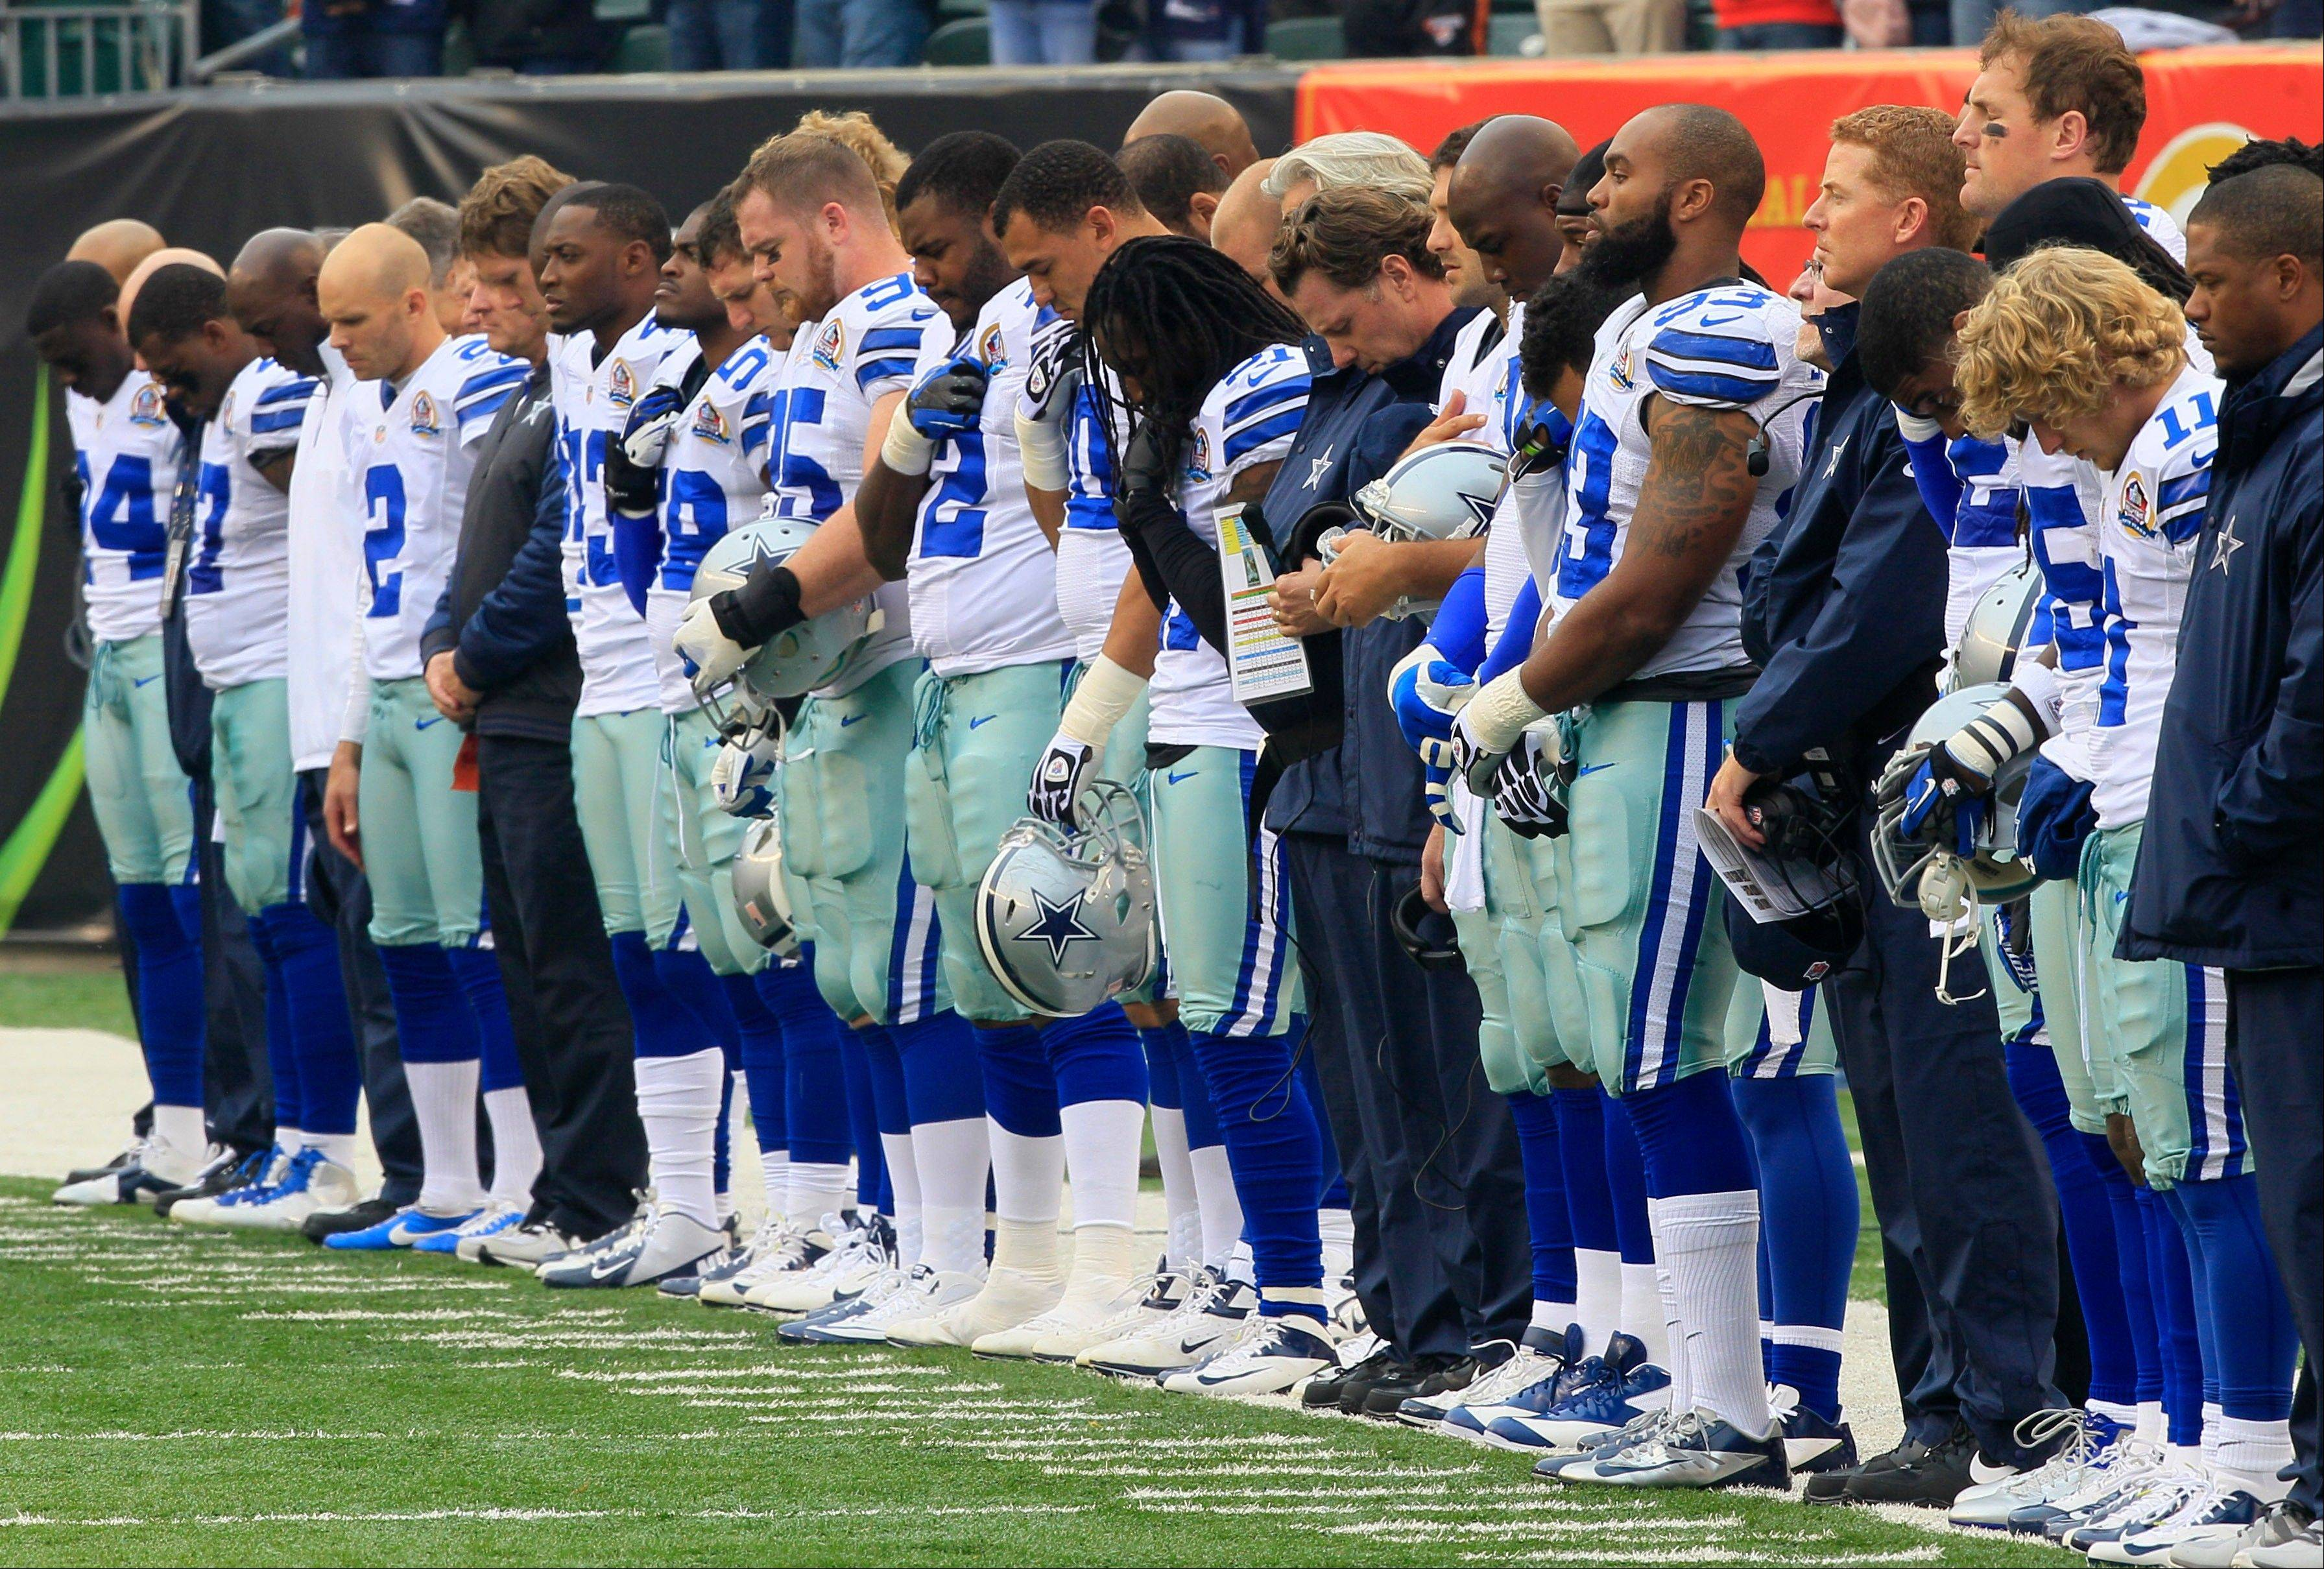 Dallas Cowboys players hang their heads during a moment of silence honoring teammate Jerry Brown who was killed in an automobile accident prior to an NFL football game against the Cincinnati Bengals, Sunday, Dec. 9, 2012, in Cincinnati.